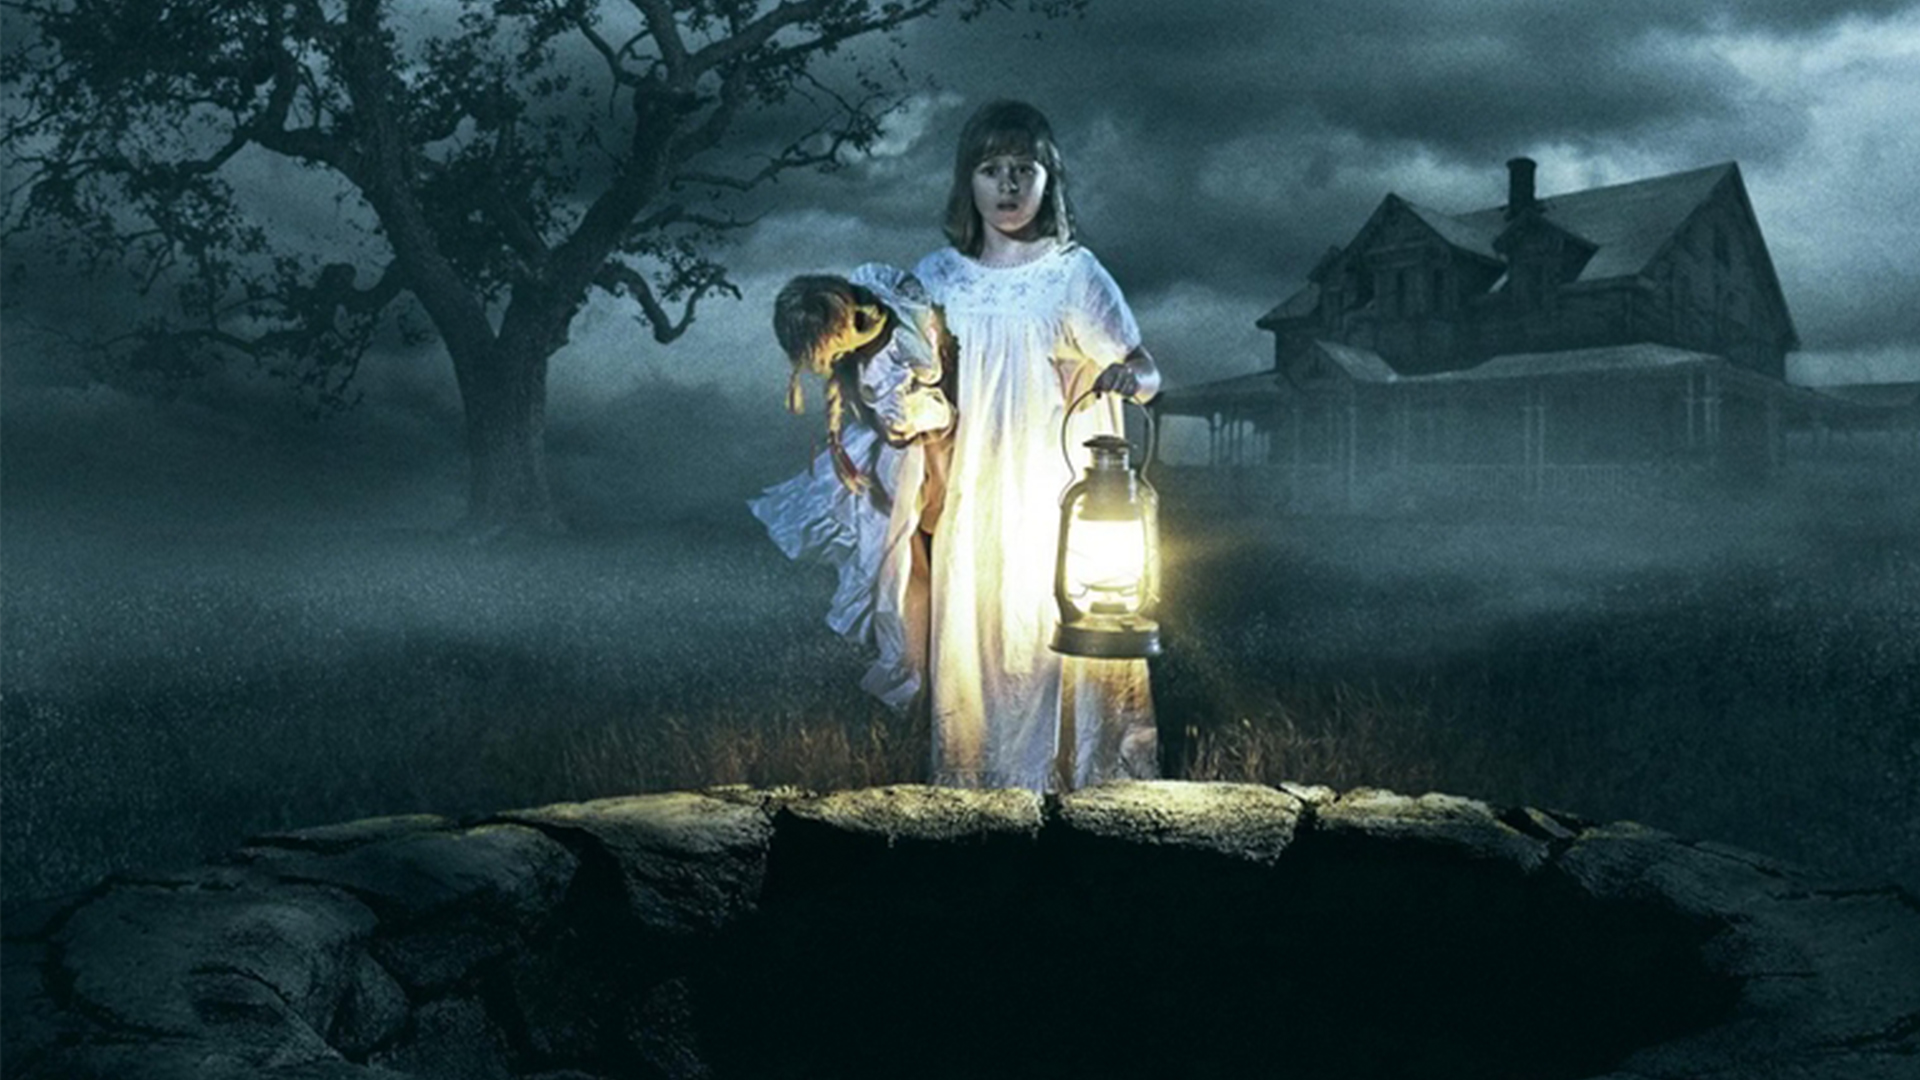 The Conjuring spinoff Annabelle: Creation gets a new trailer and poster